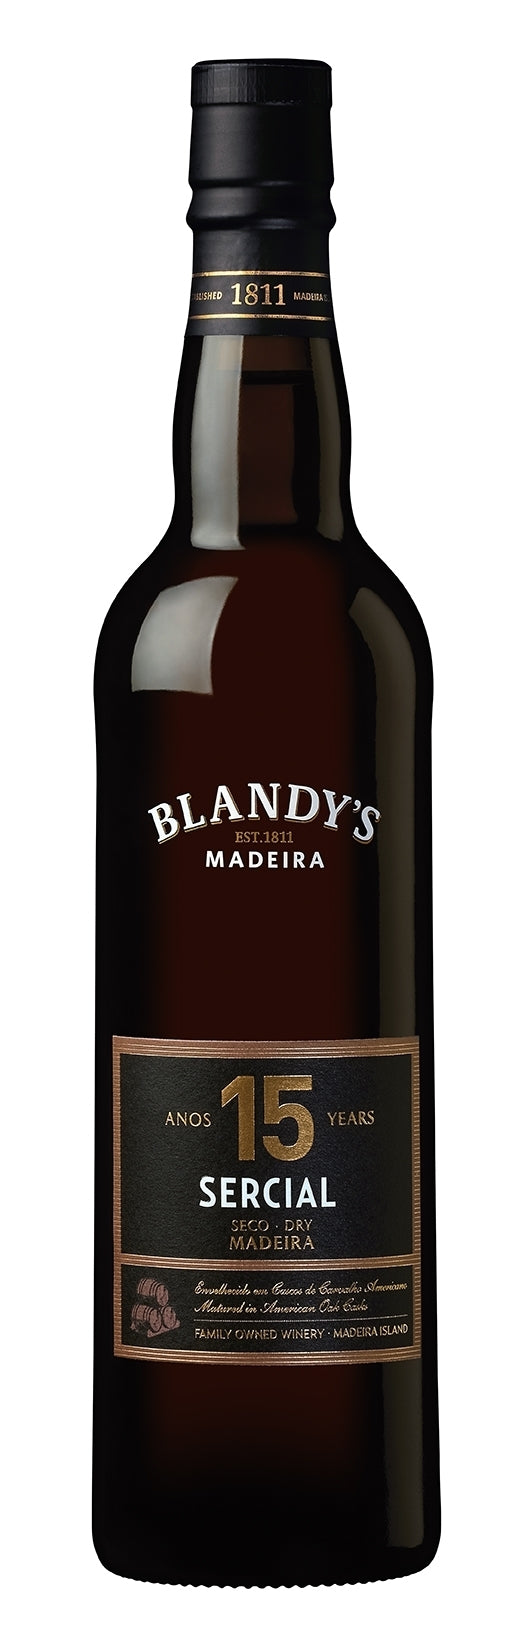 Blandy 15 Year Old Sercial Madeira